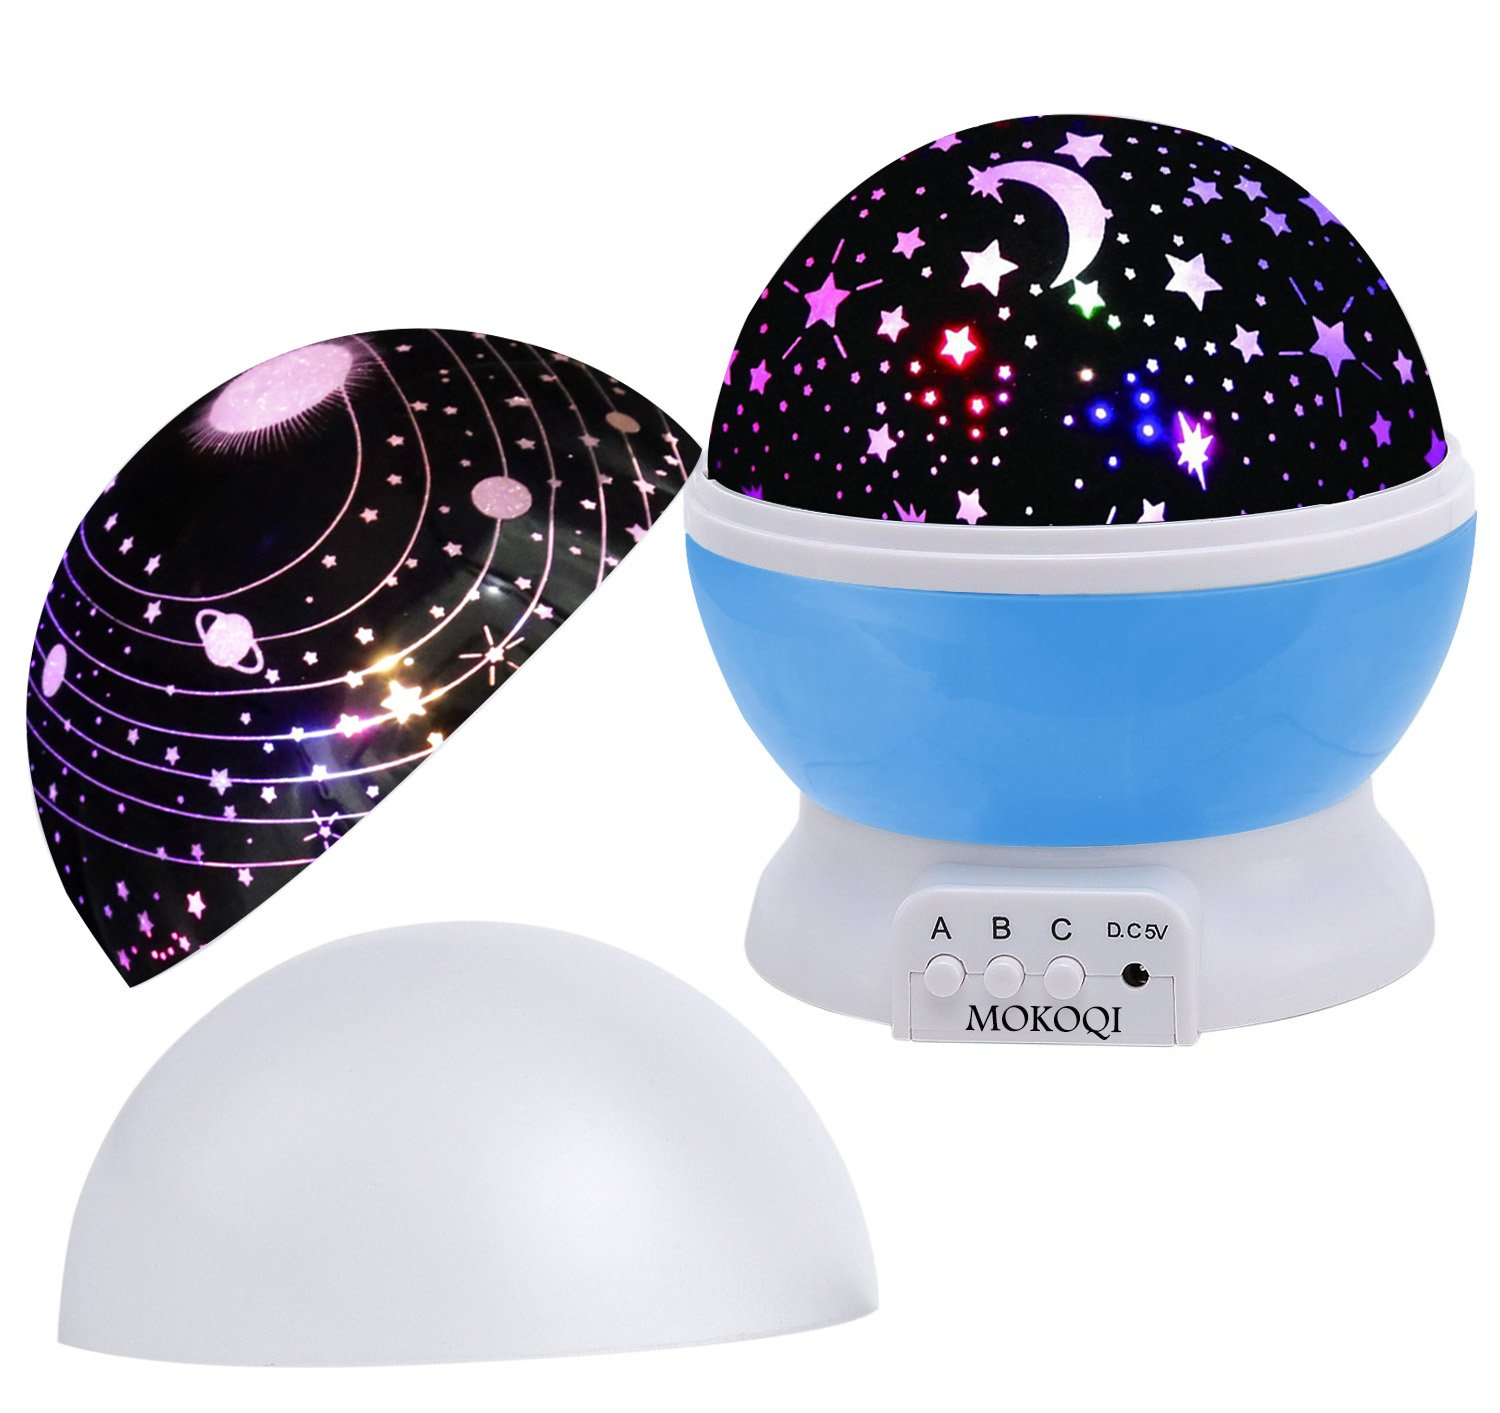 CD5101000 MOKOQI Baby Night Light Lamps For Bedroom Romantic 360 Degree Rotating Star with Sky Moon Cover Cosmos Cover Projector Lights Color Changing LED For Kids Girls Boys Baby Nursery Gift Black-2 Lids